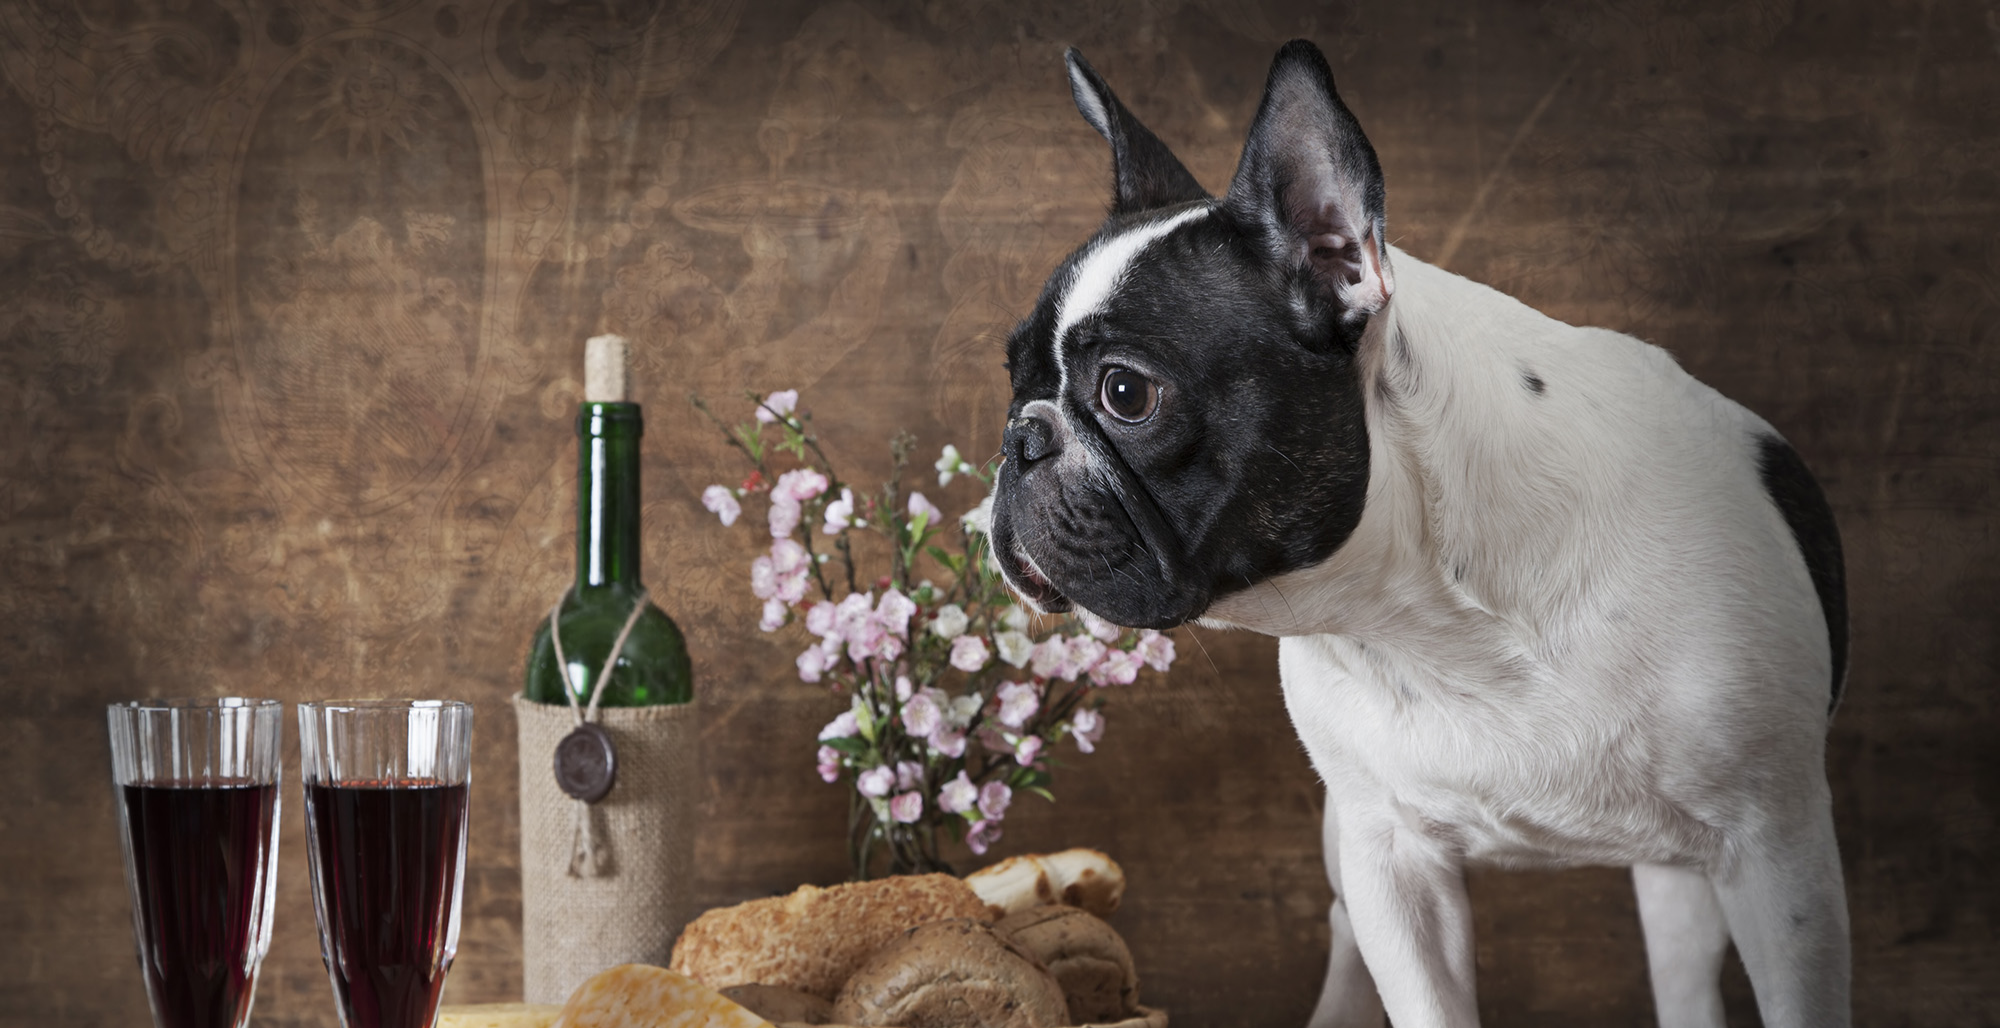 Wine and Canine, a dog-friendly wine tasting